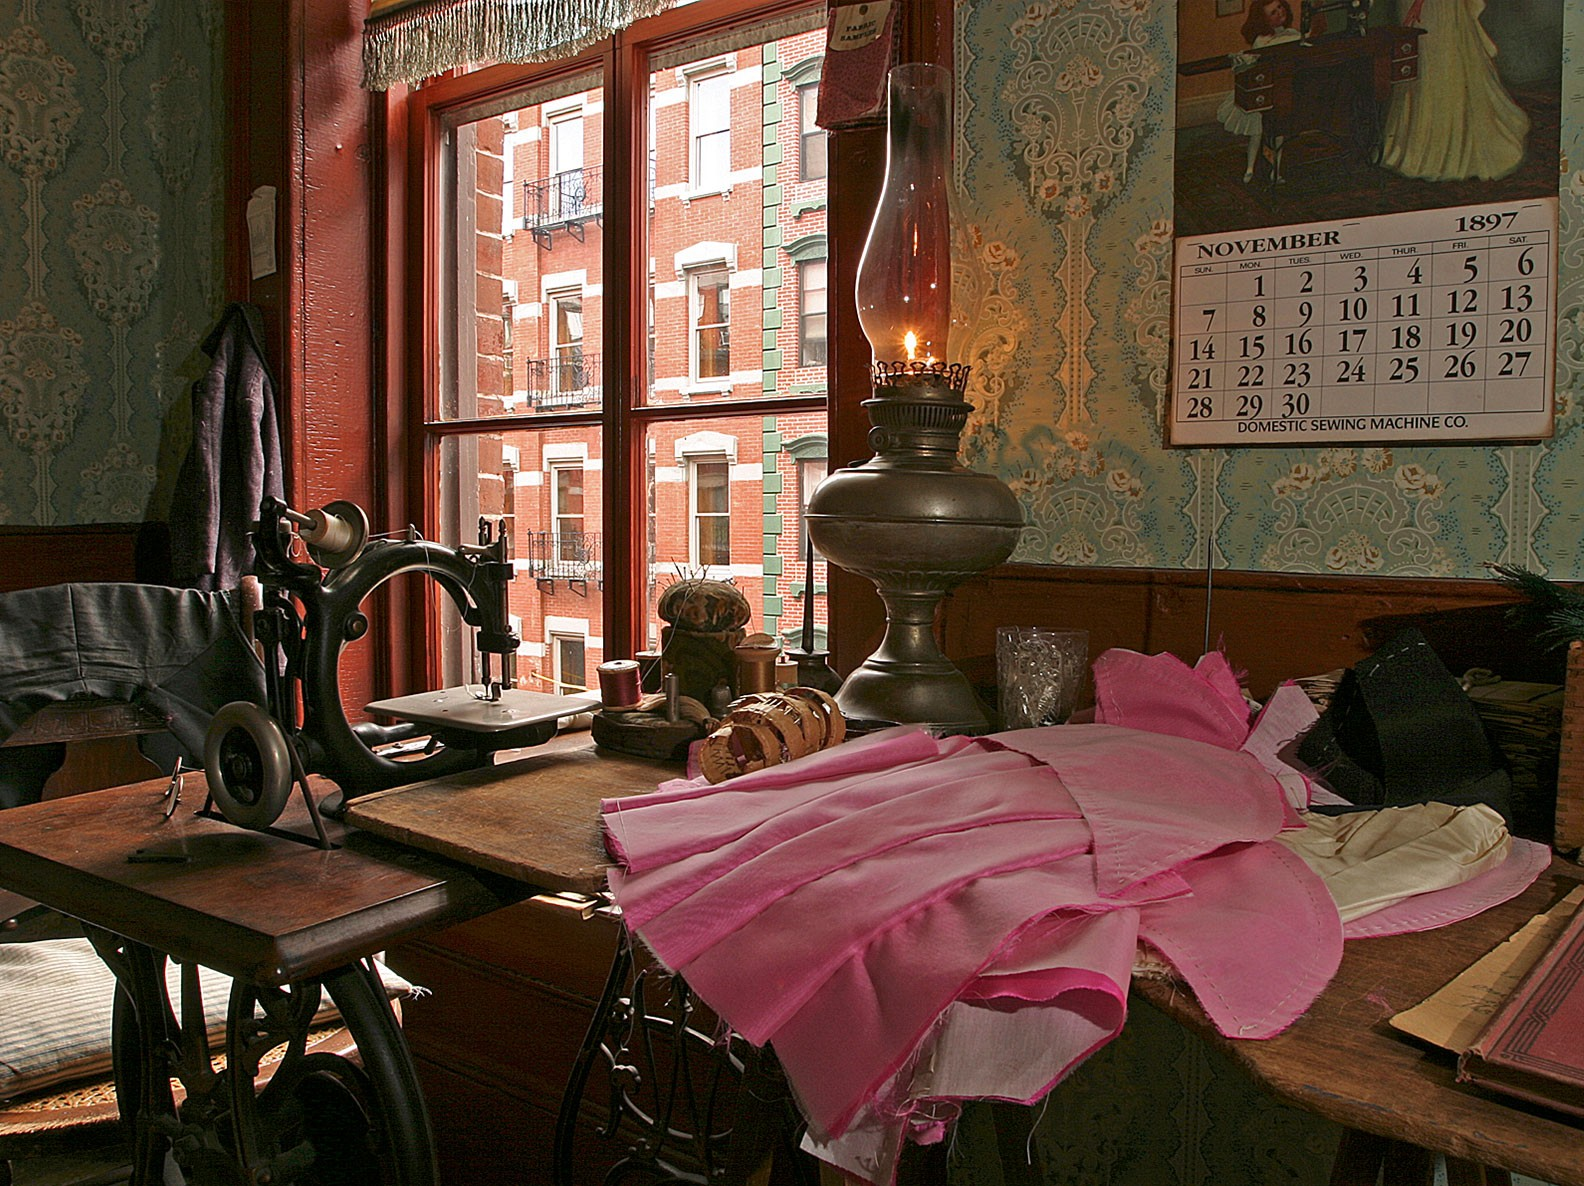 A sewing table inside the recreated Levine family parlor